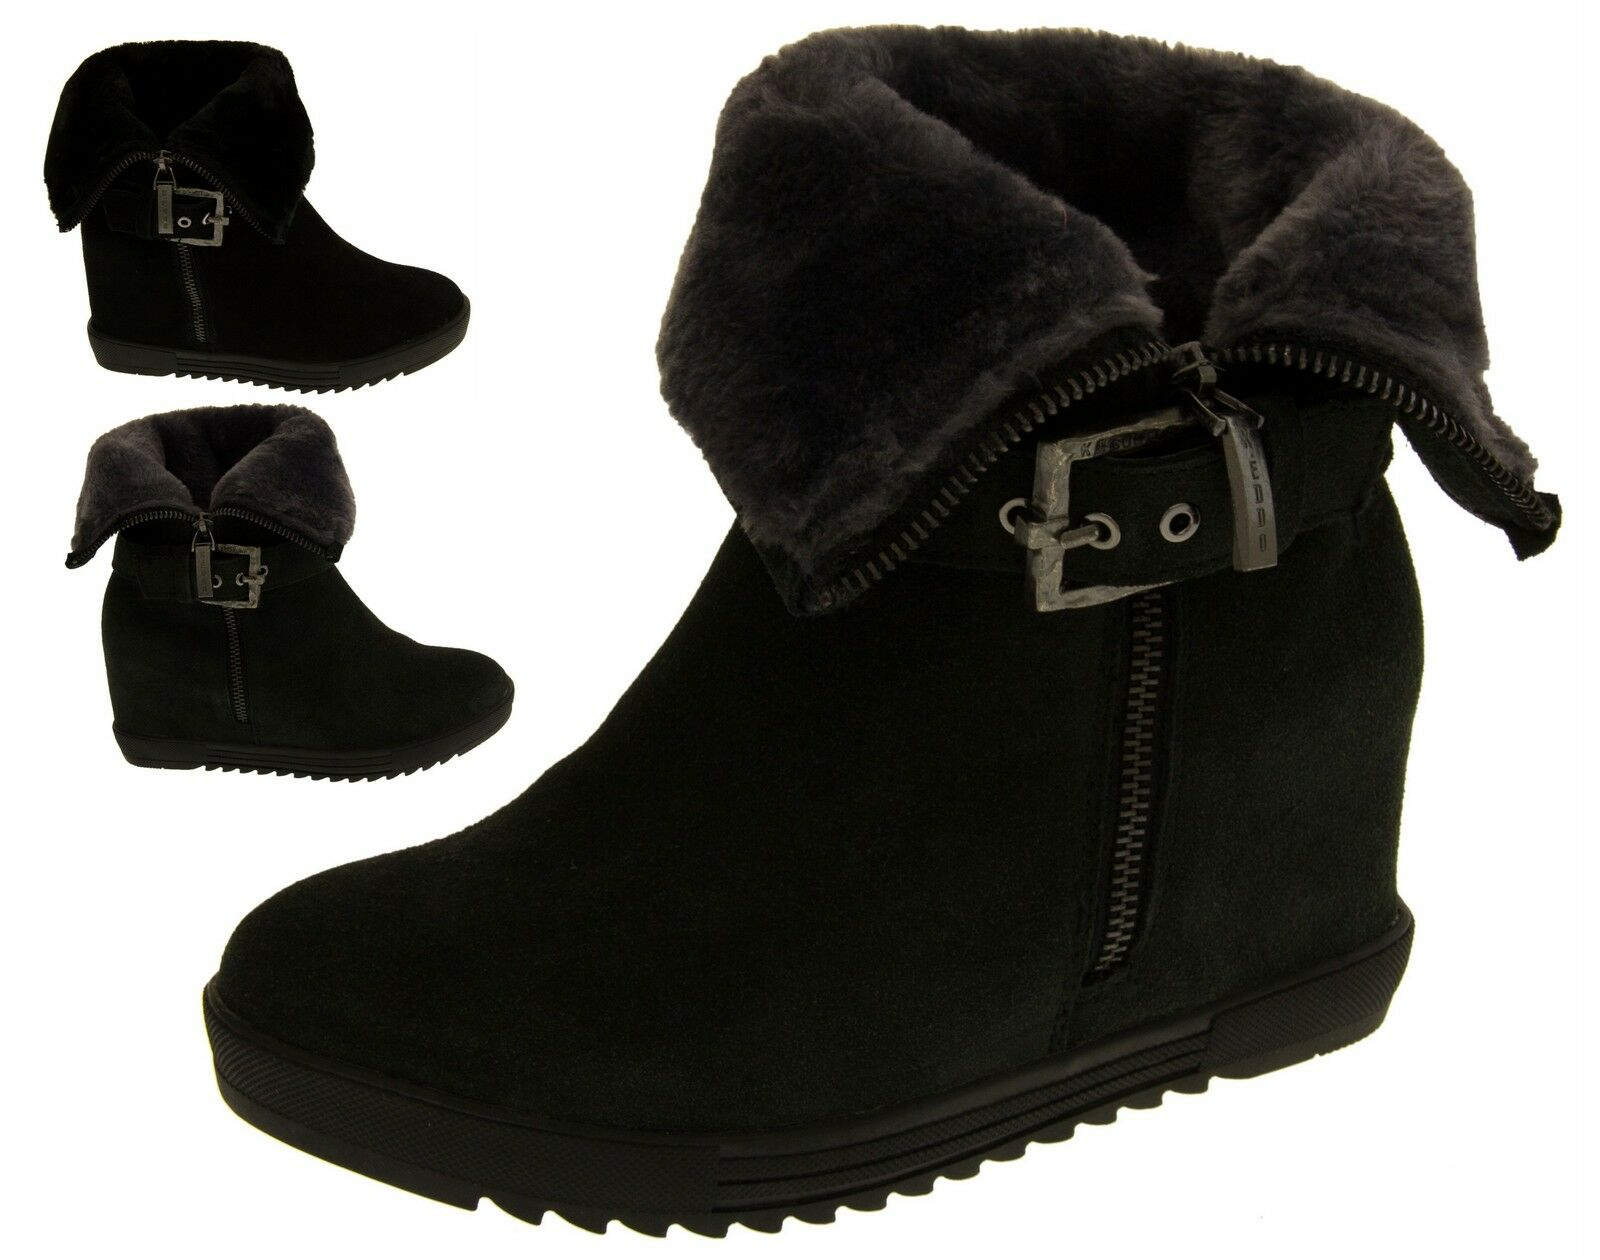 Womens Keddo Hidden Wedge Ankle Boots Ladies Warm Lined Winter Boot Size 3 - 8